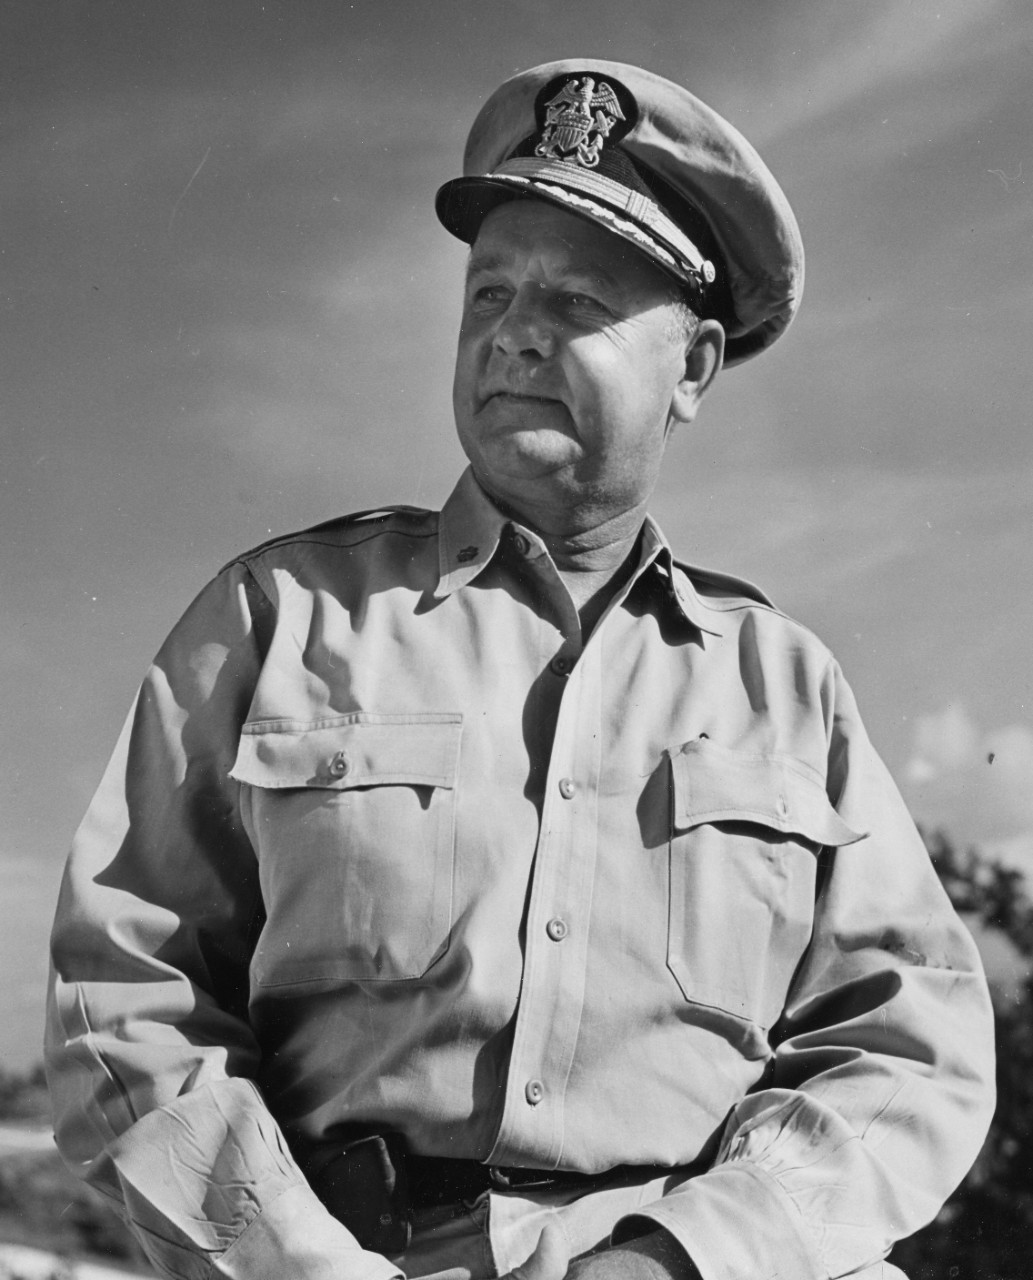 Cmdr. Sigurd Hansen, who received the Navy Cross for his performance of duty off Samar, is seen here at Guam, 20 June 1945. (U.S. Navy Photograph 80-G-338997, taken by CSP Jerome Zerbe, National Archives and Records Administration, Still Pictures Division, College Park, Md.)